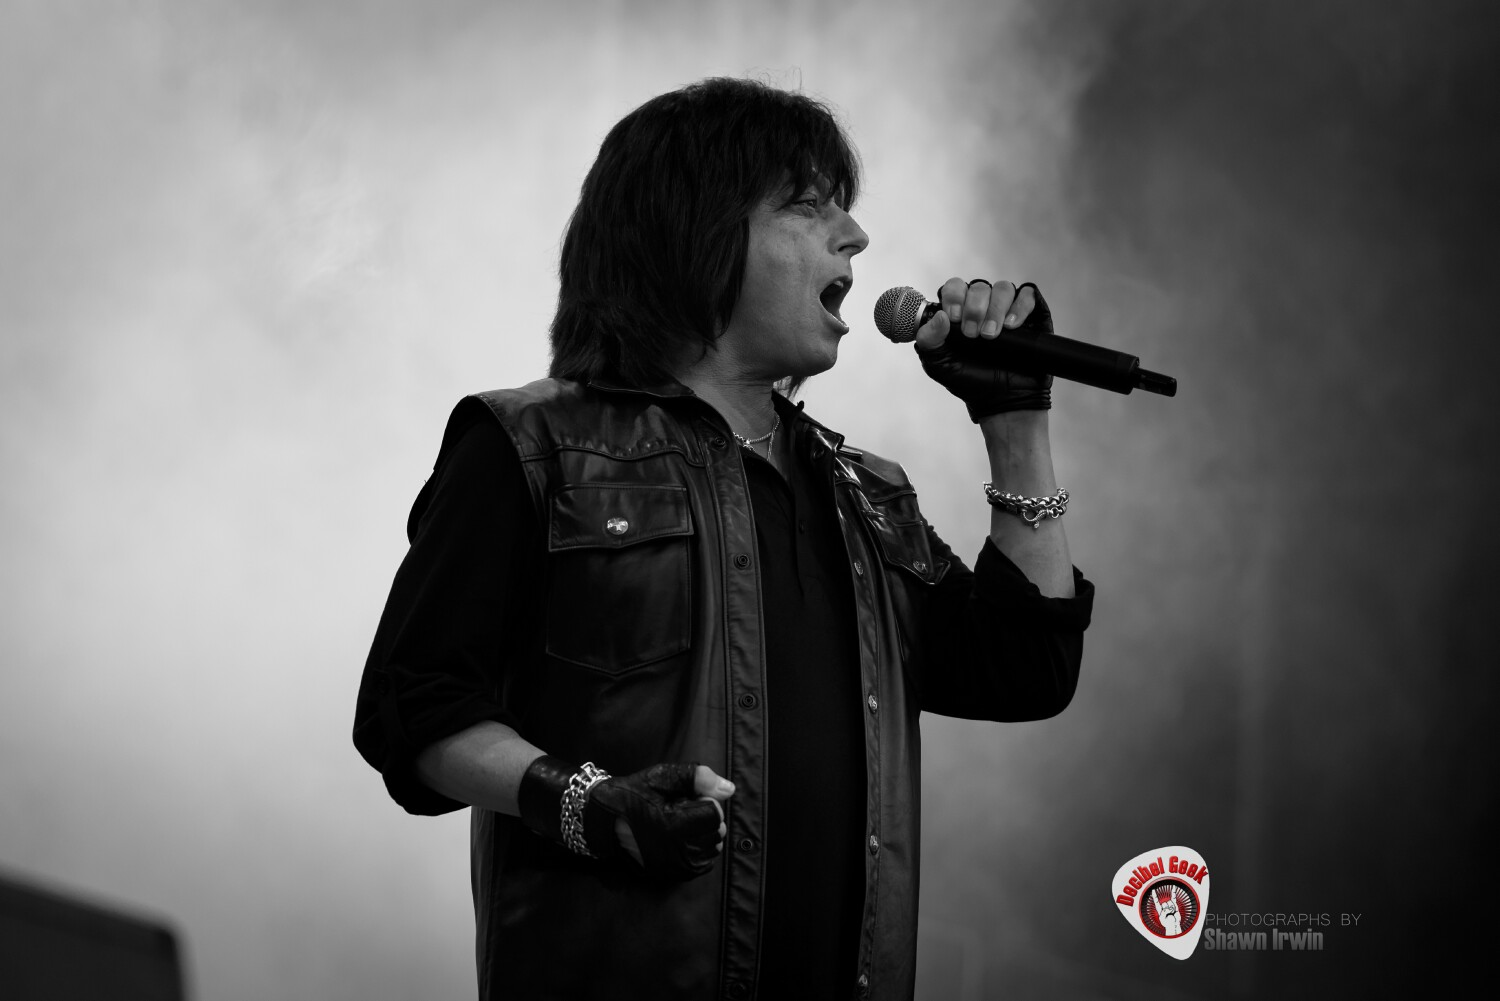 Joe Lynn Turner #17-Sweden Rock 2019-Shawn Irwin